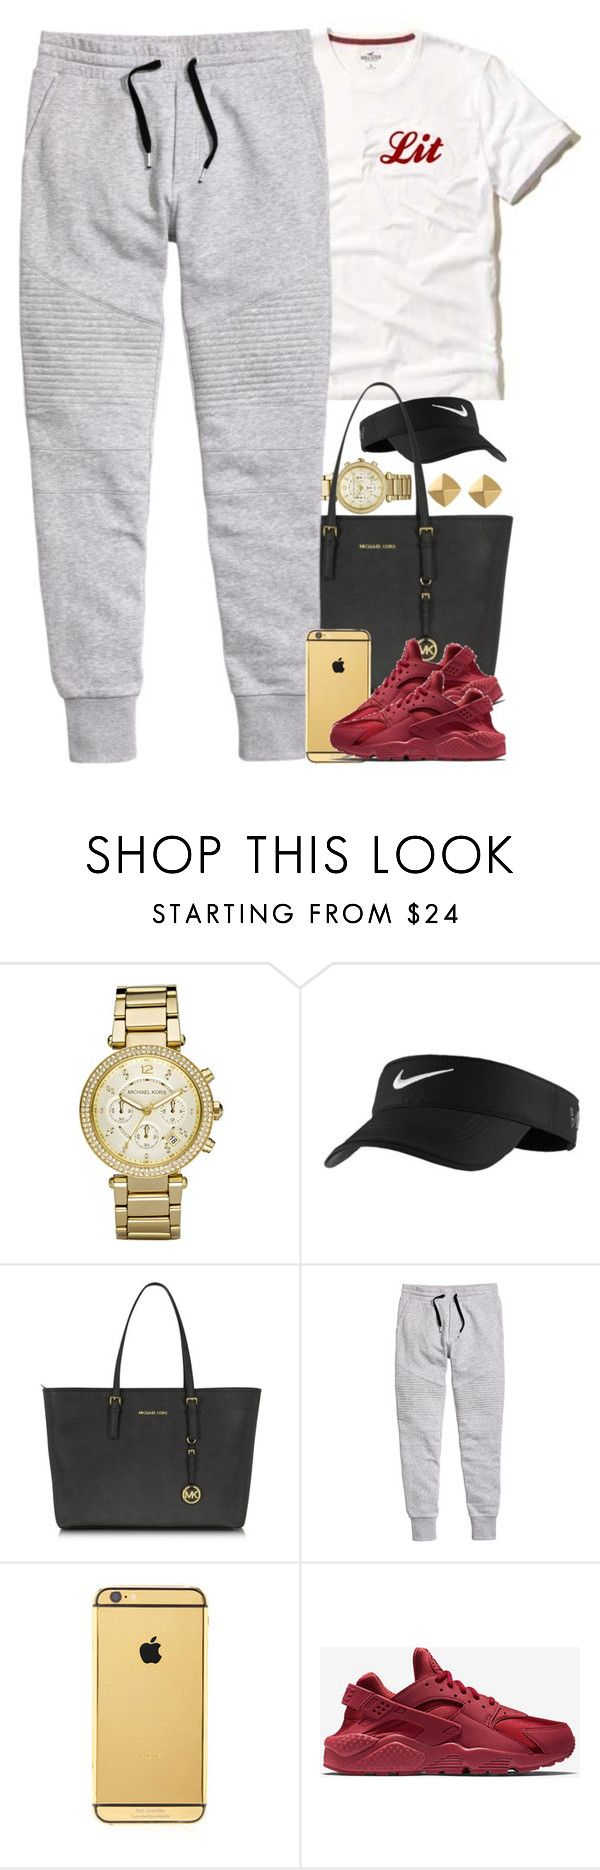 """""""Untitled #1548"""" by power-beauty ❤ liked on Polyvore featuring Michael Kors, NIKE, Goldgenie and Vince Camuto"""